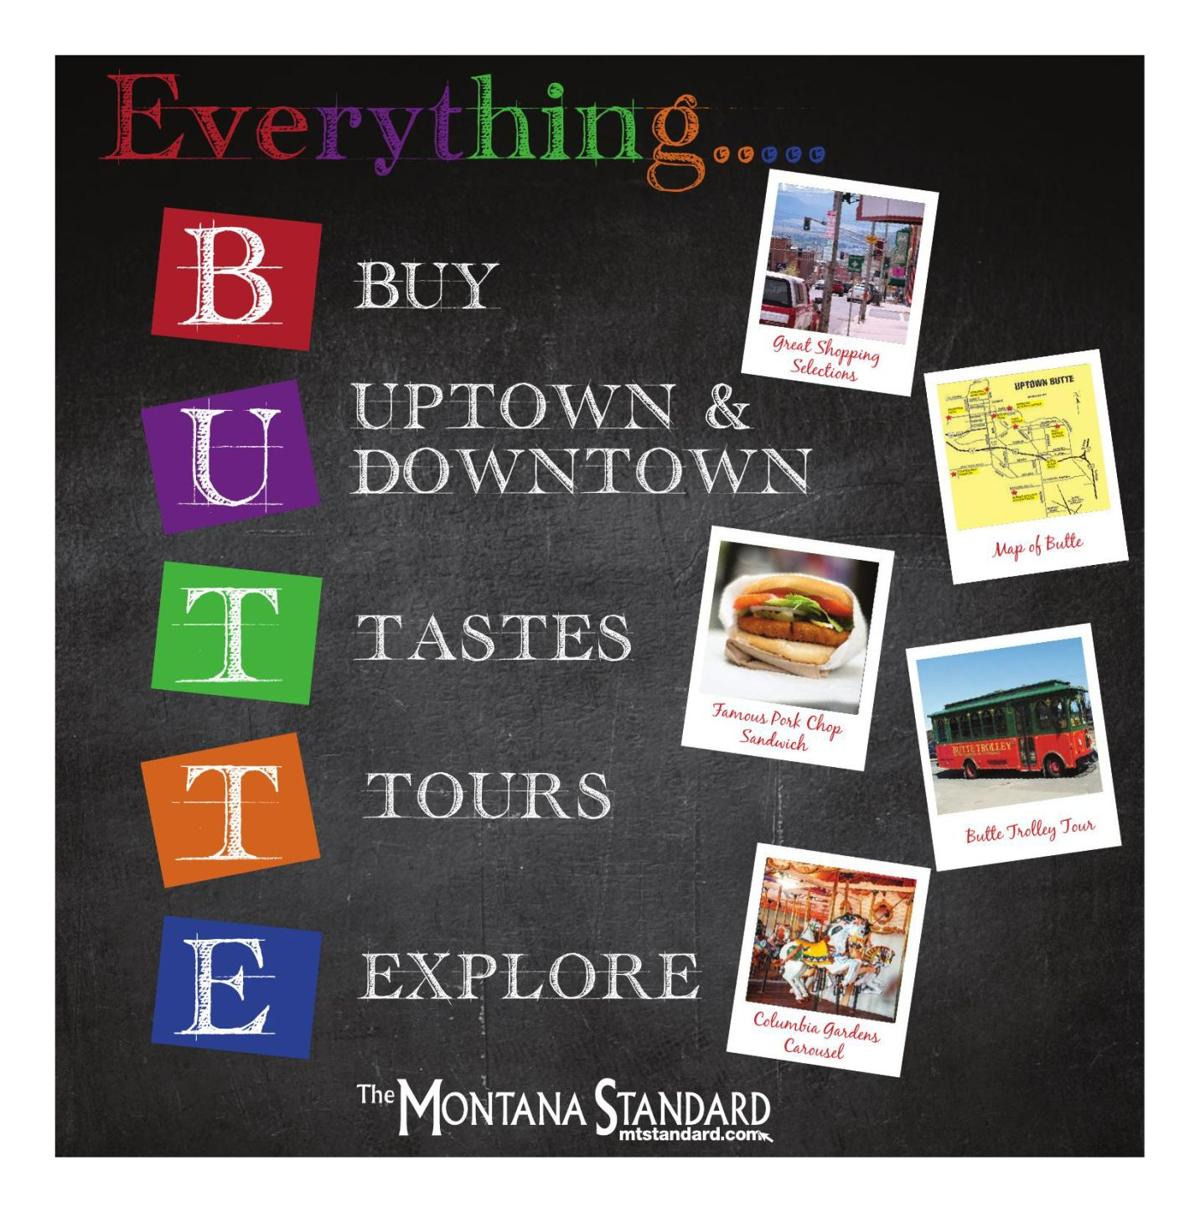 Everything Butte Feb. 2019